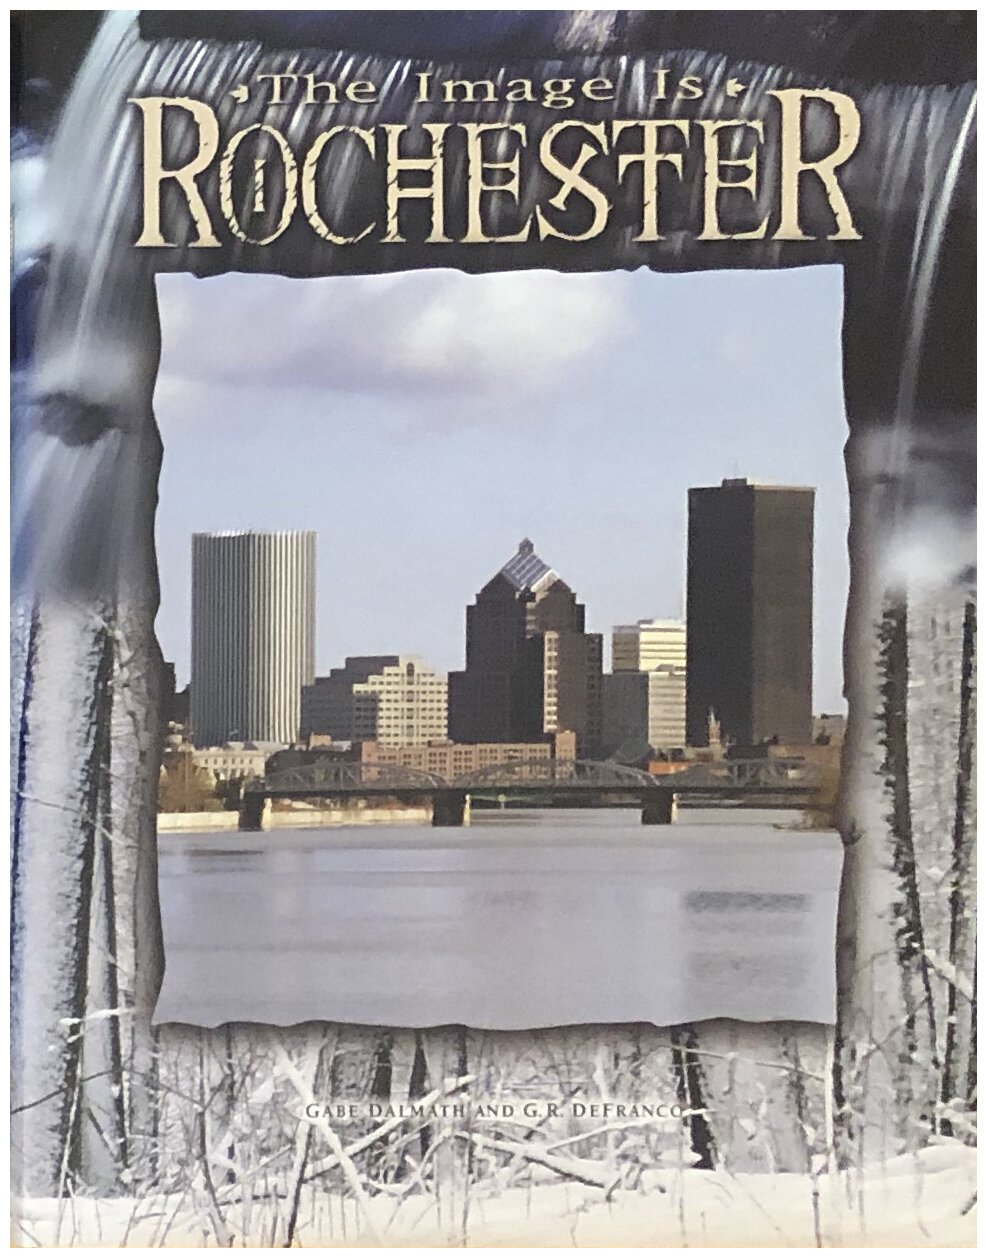 Image is Rochester cover.jpg